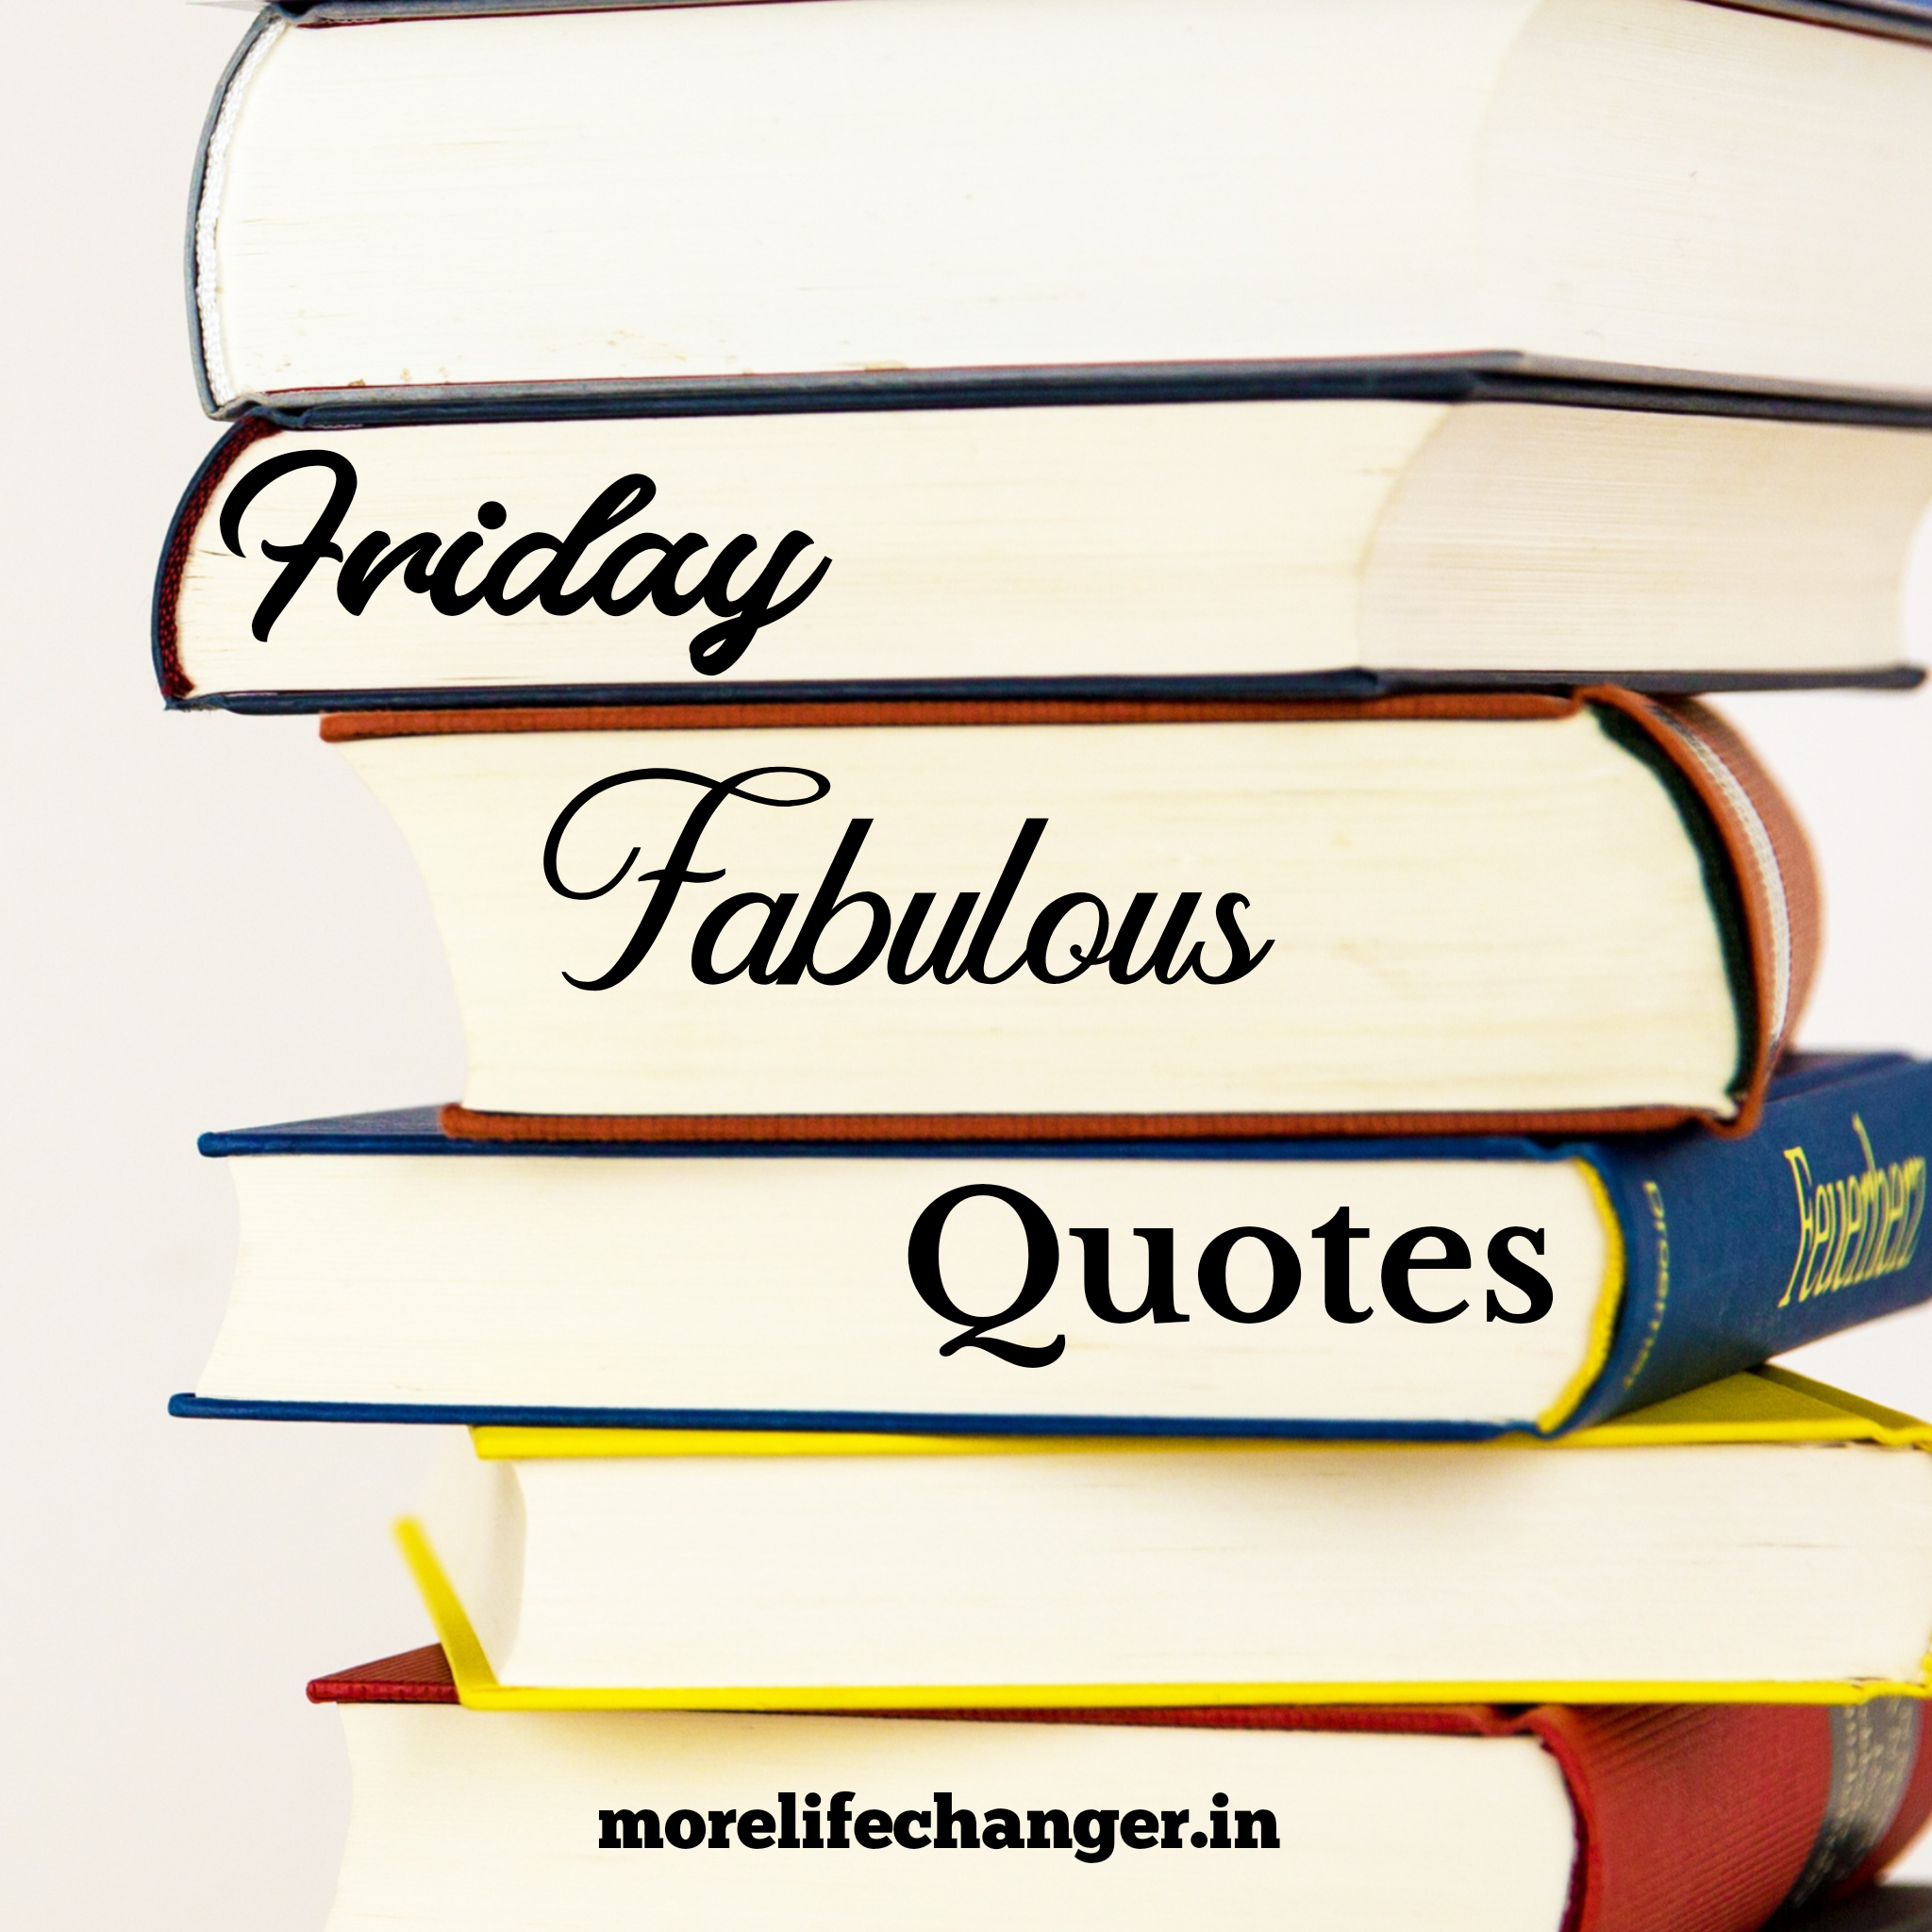 Friday fabulous quotes